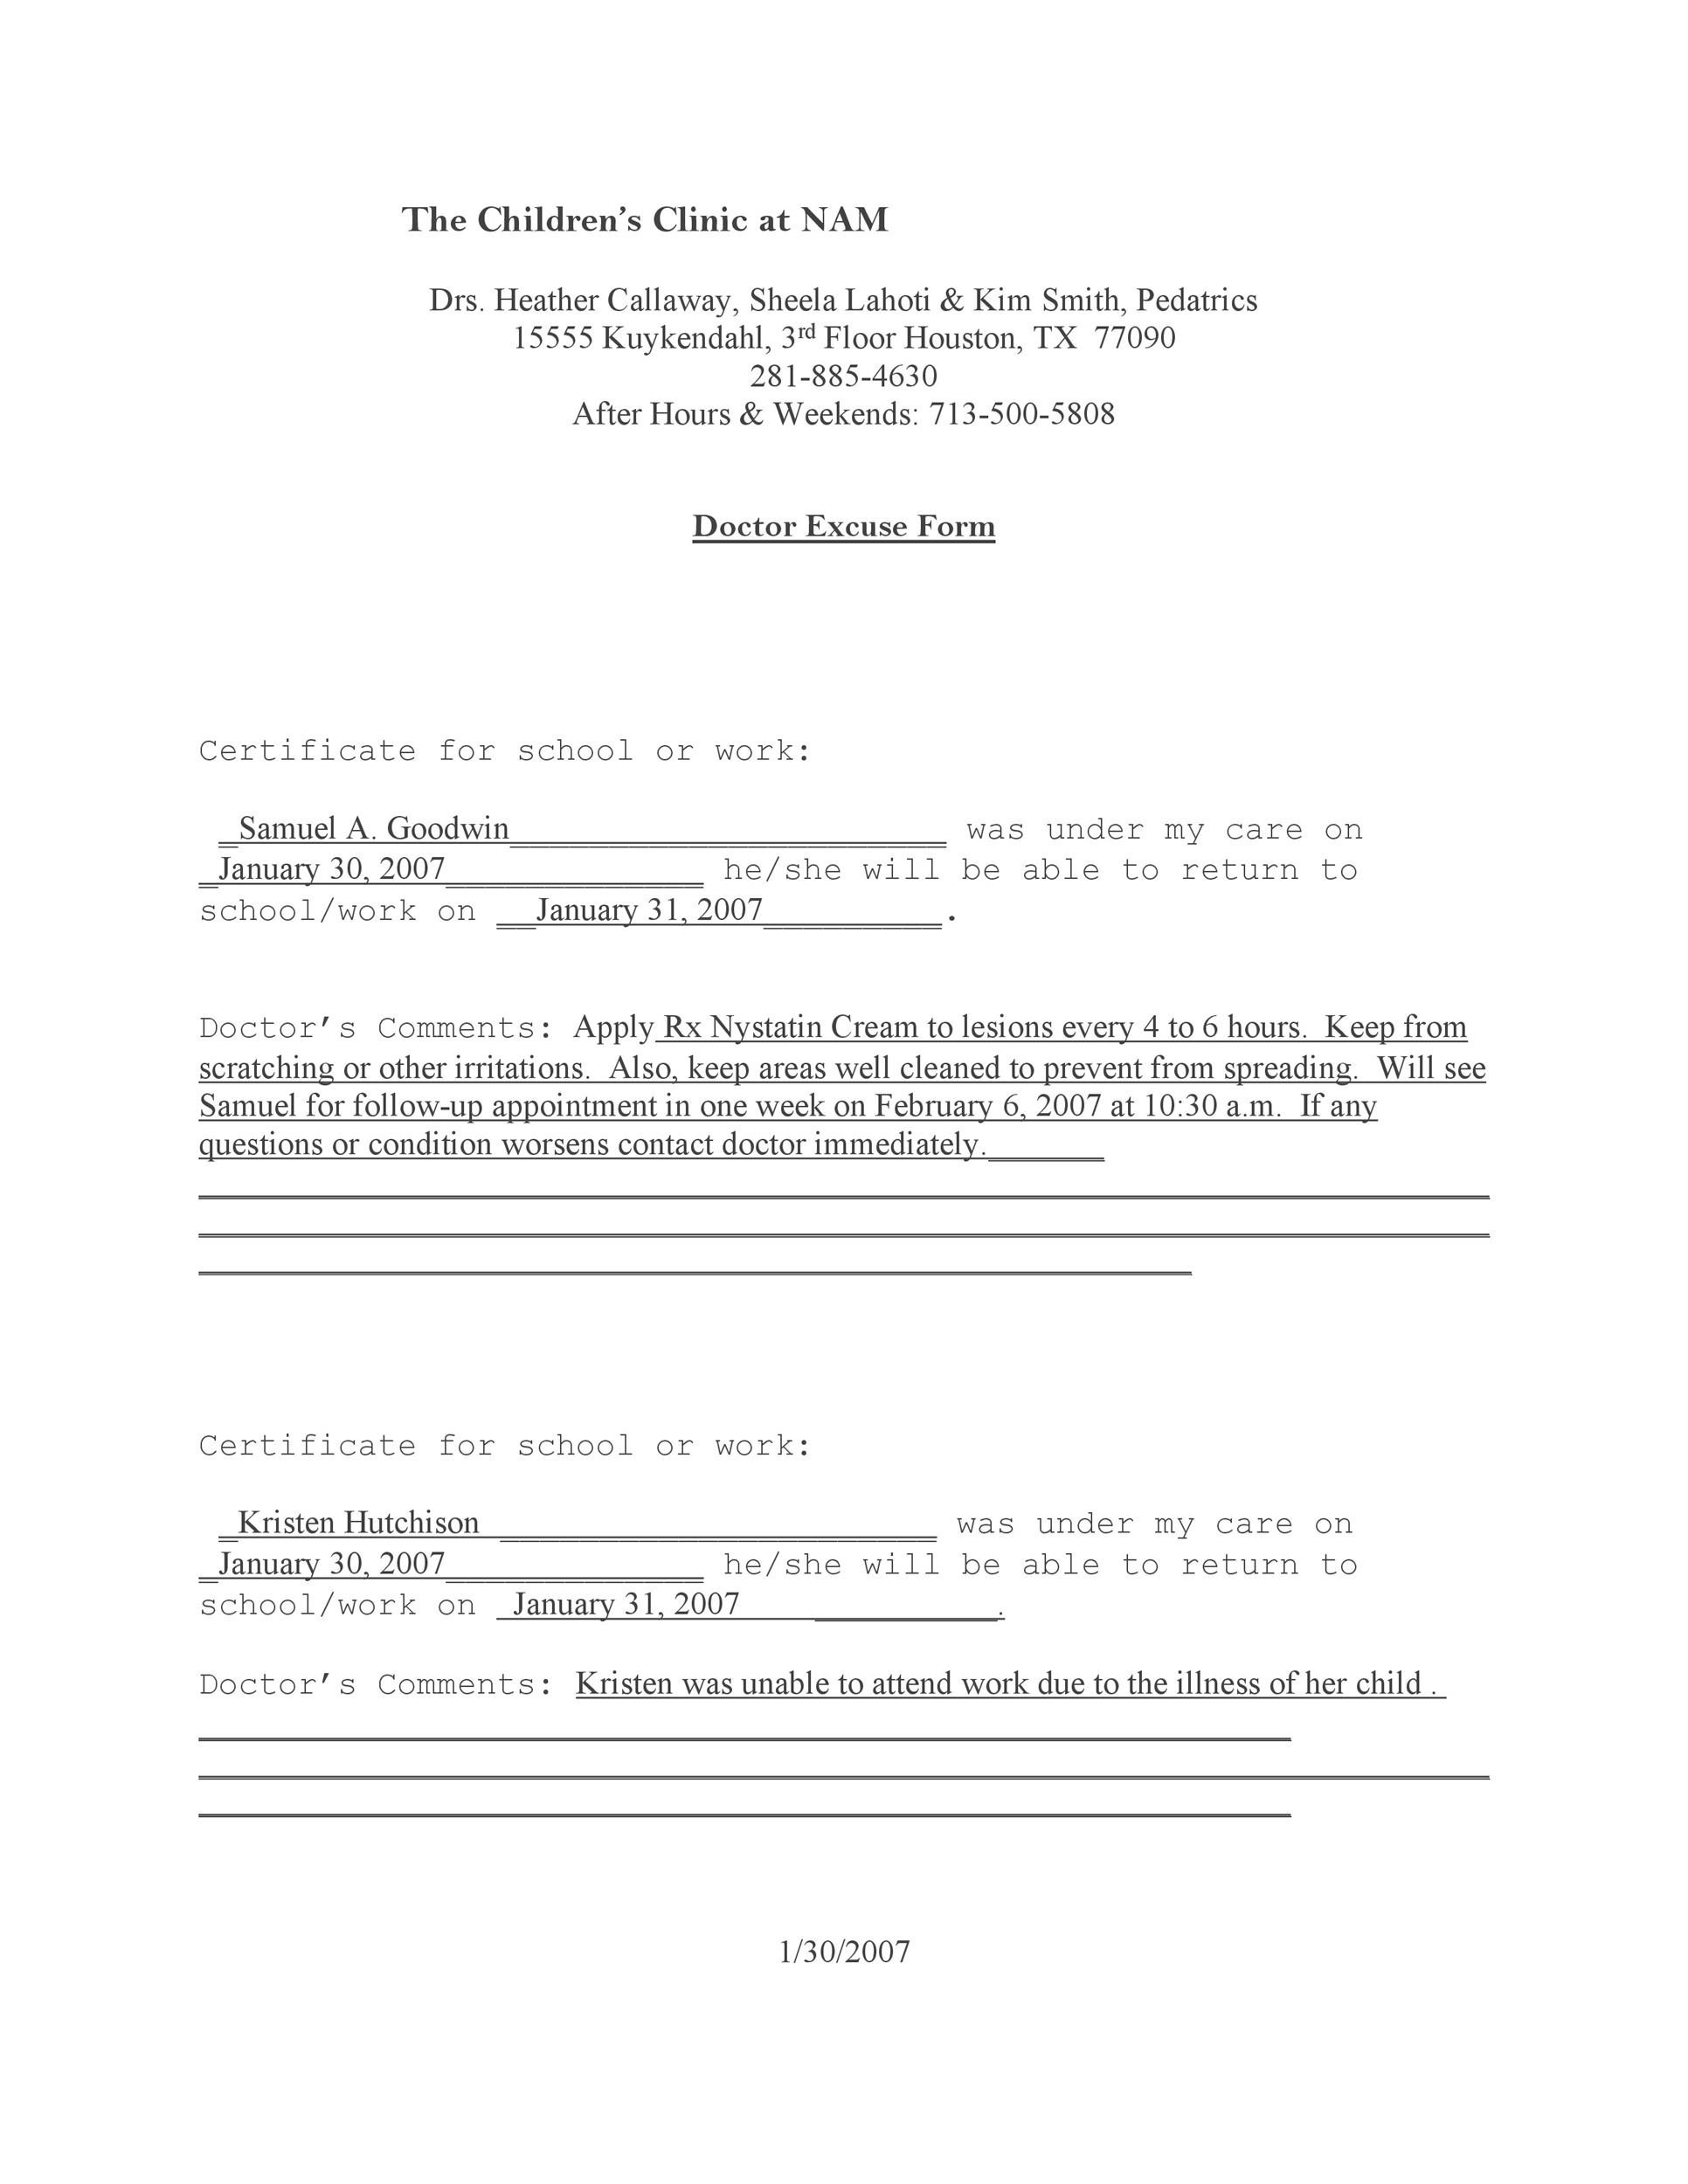 Free fake doctors note template download popular template free.